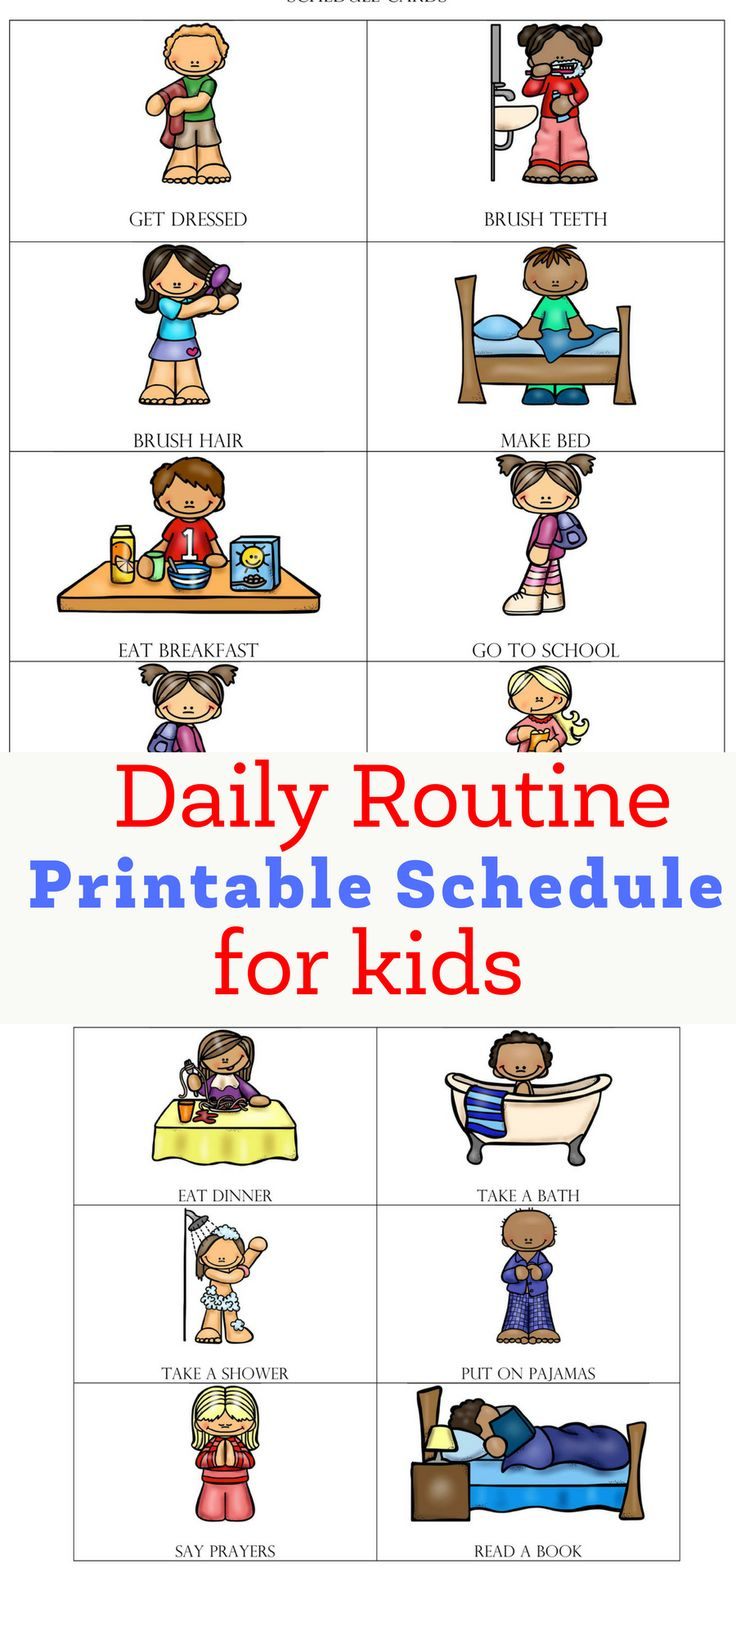 childrens care routines Project funded by the child care and head start bureaus in the us department of health and human services helping children understand routines and classroom.